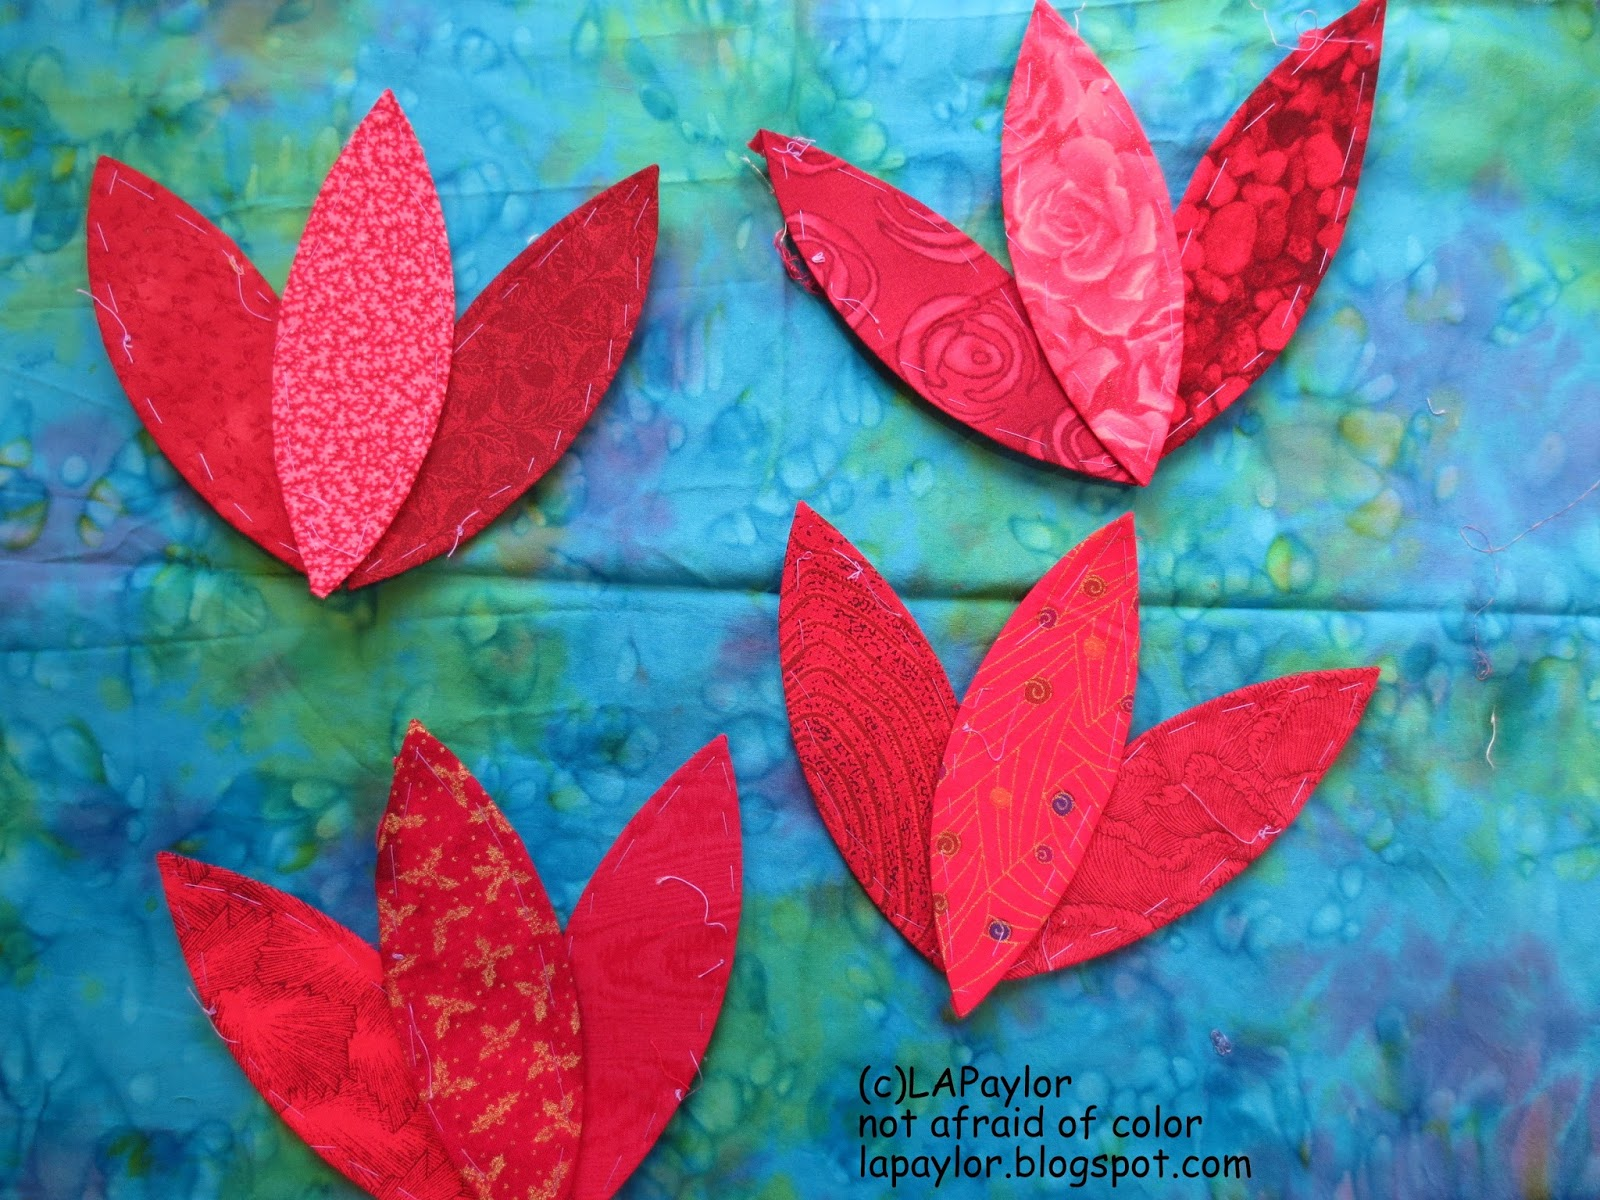 Not Afraid of Color: Red leaves, or flowers?